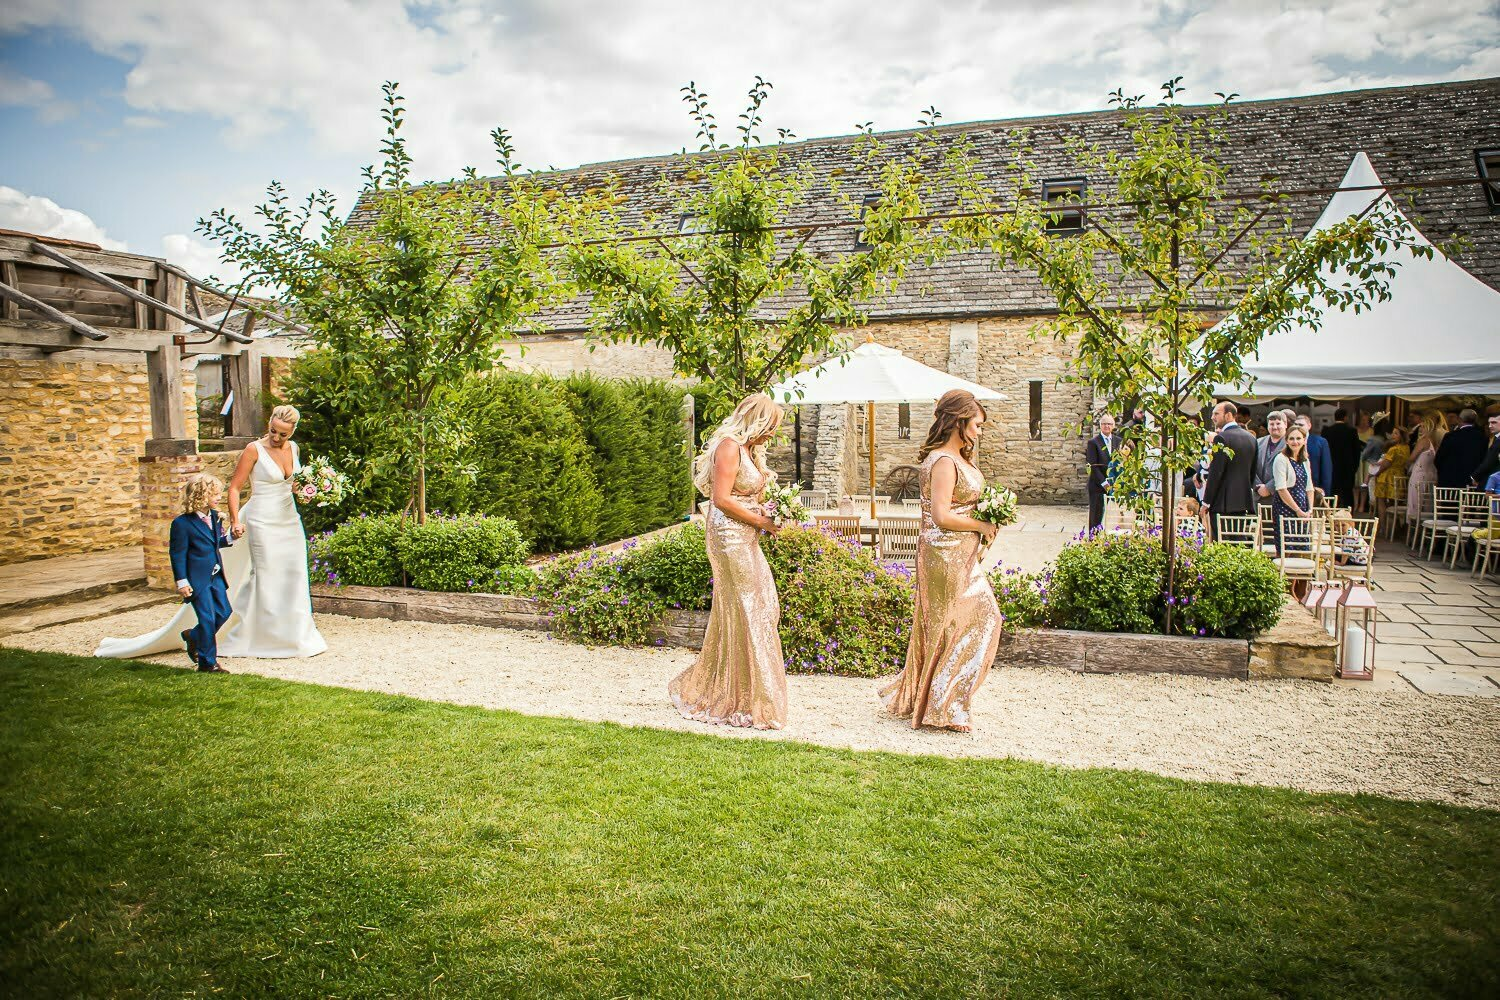 Oxleaze Barn Wedding LT 4